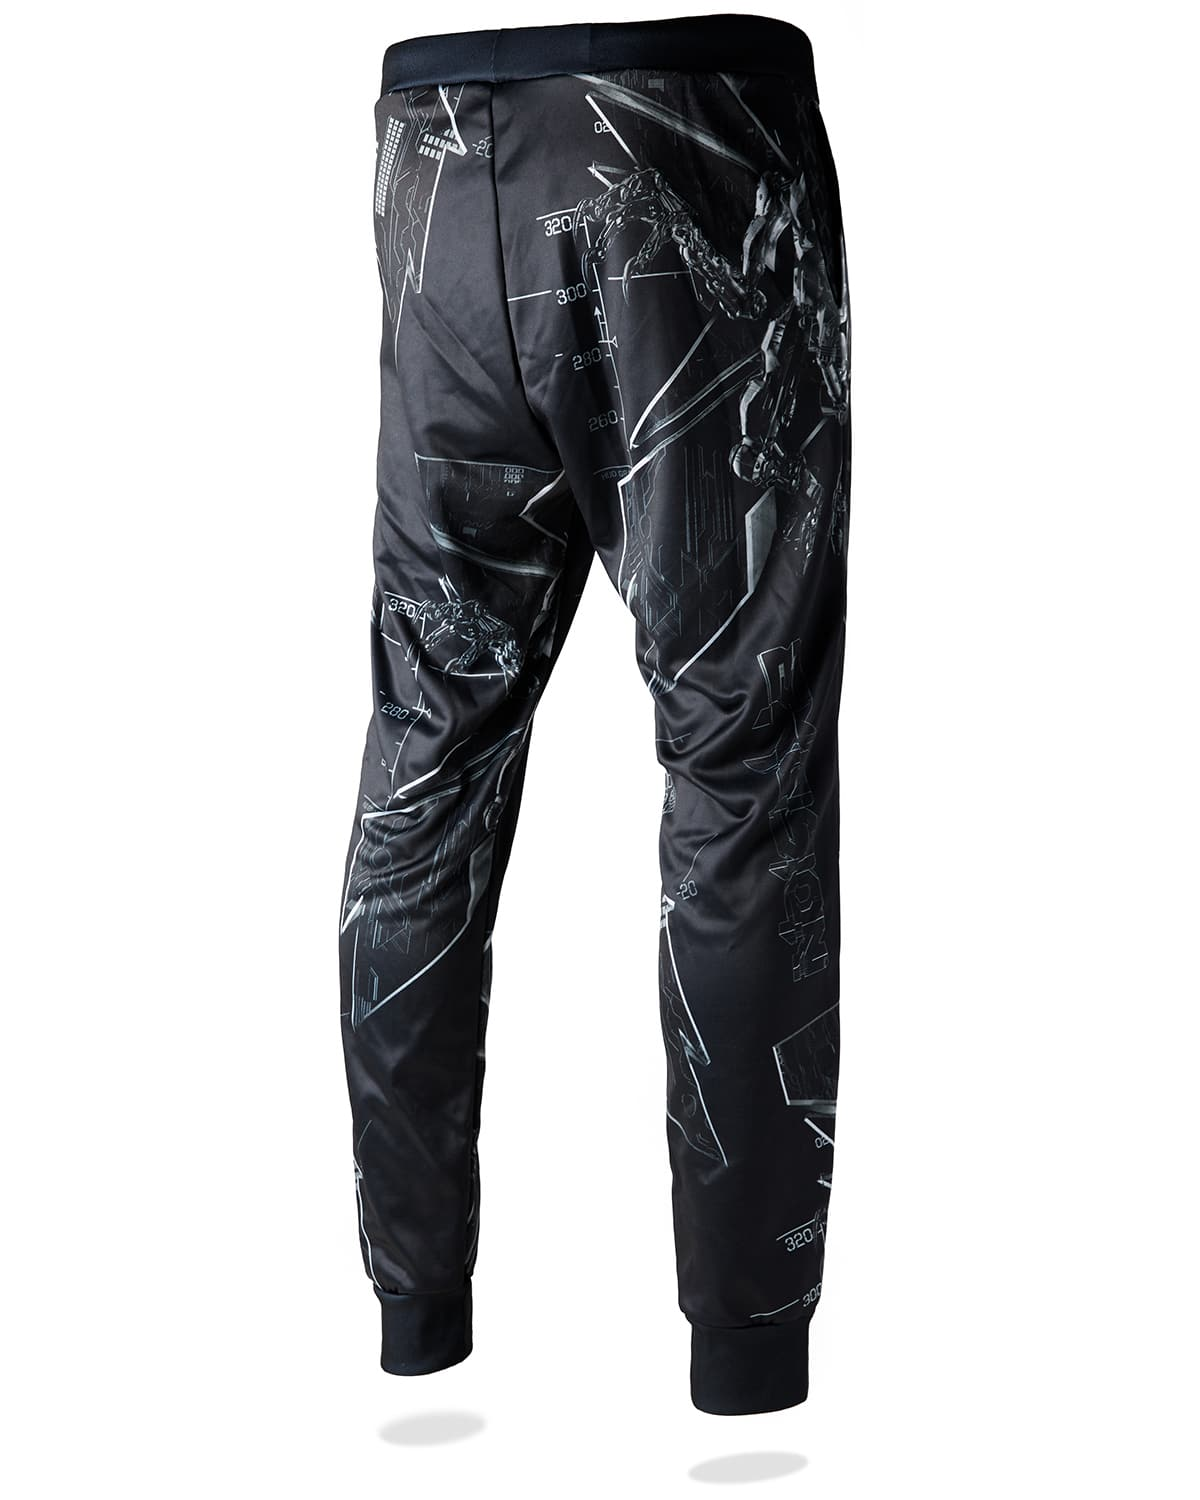 Excision 'Magnetite' Joggers - Black/White